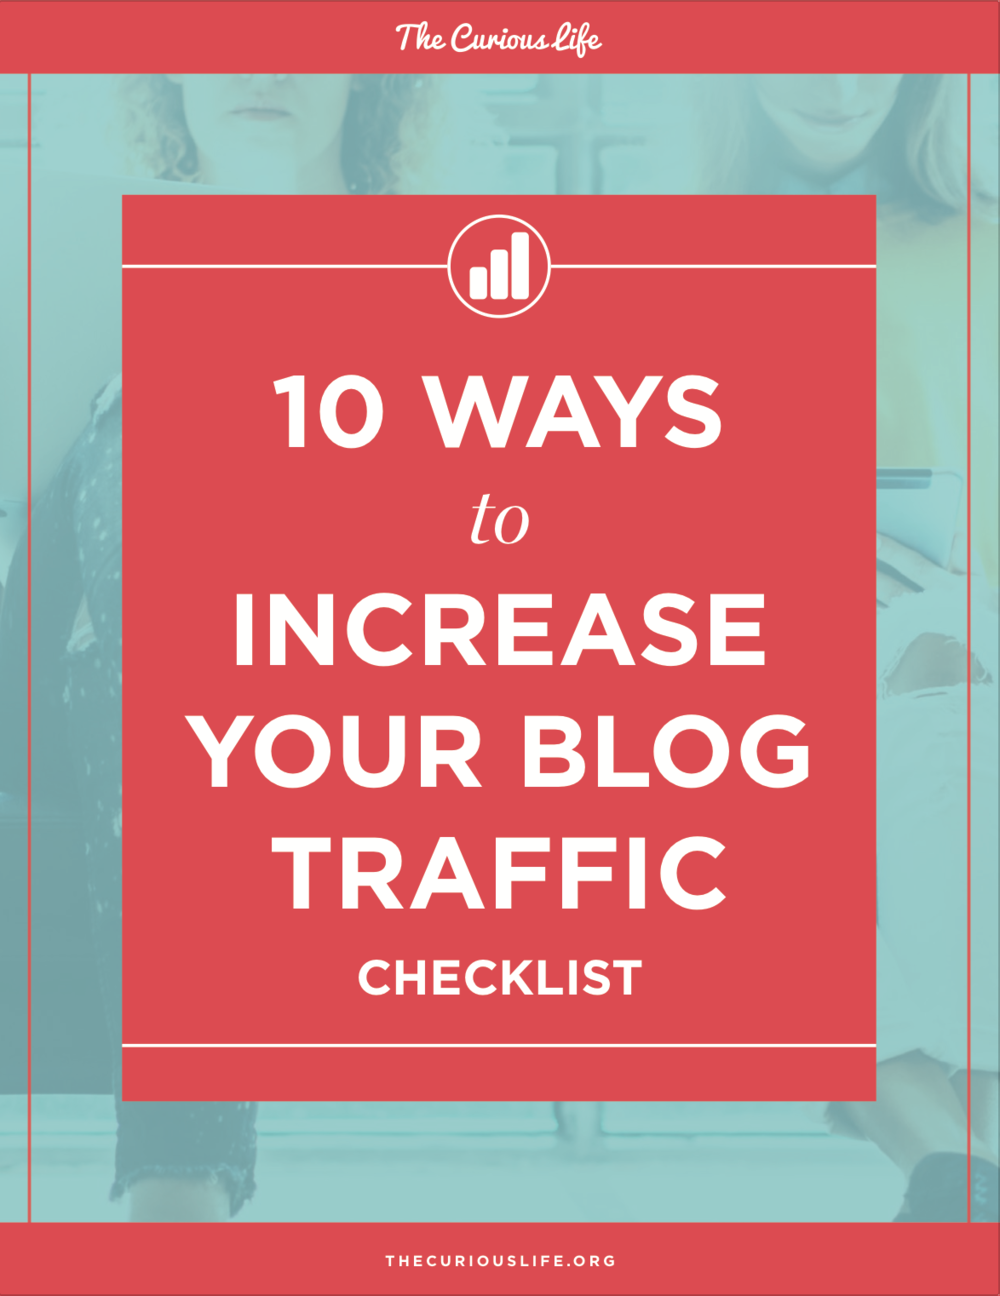 How to Increase Blog Traffic Blogger Checklist